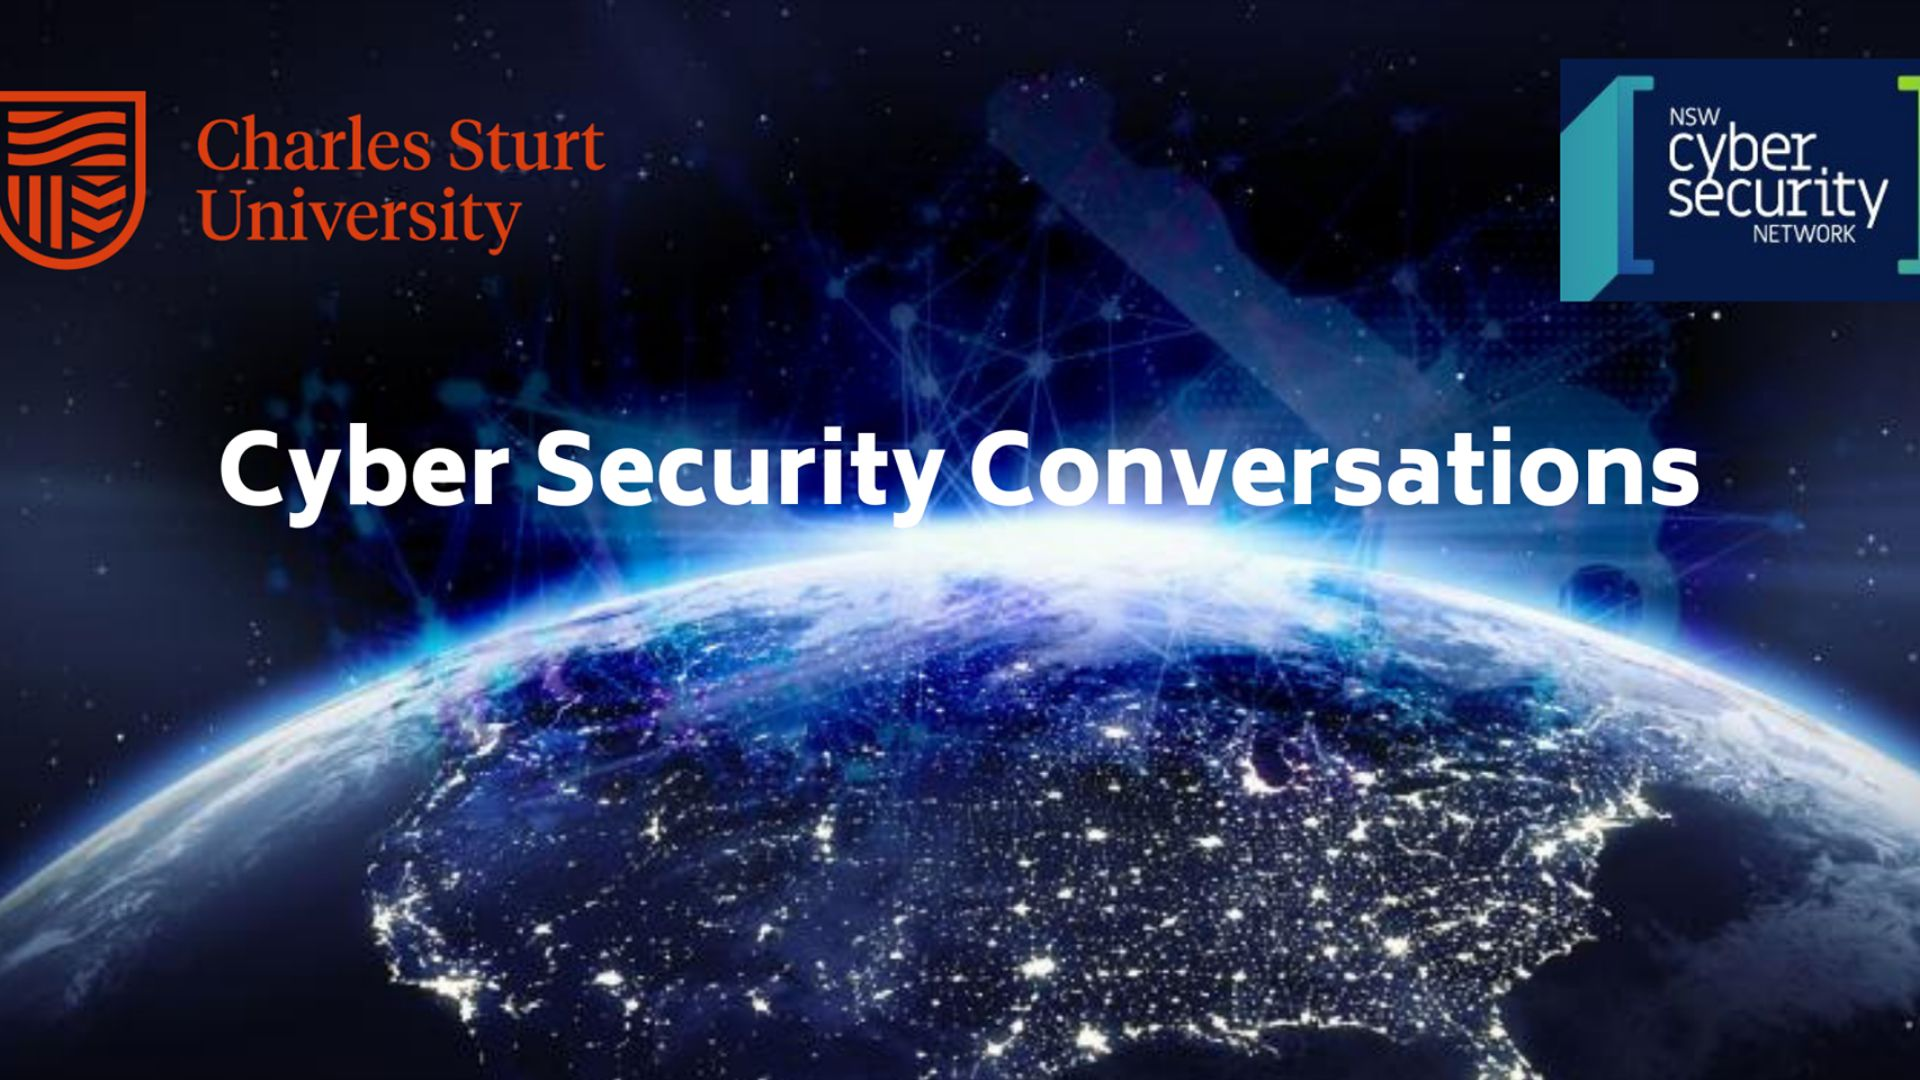 Free 'Cybersecurity for businesses' workshop in Port Macquarie